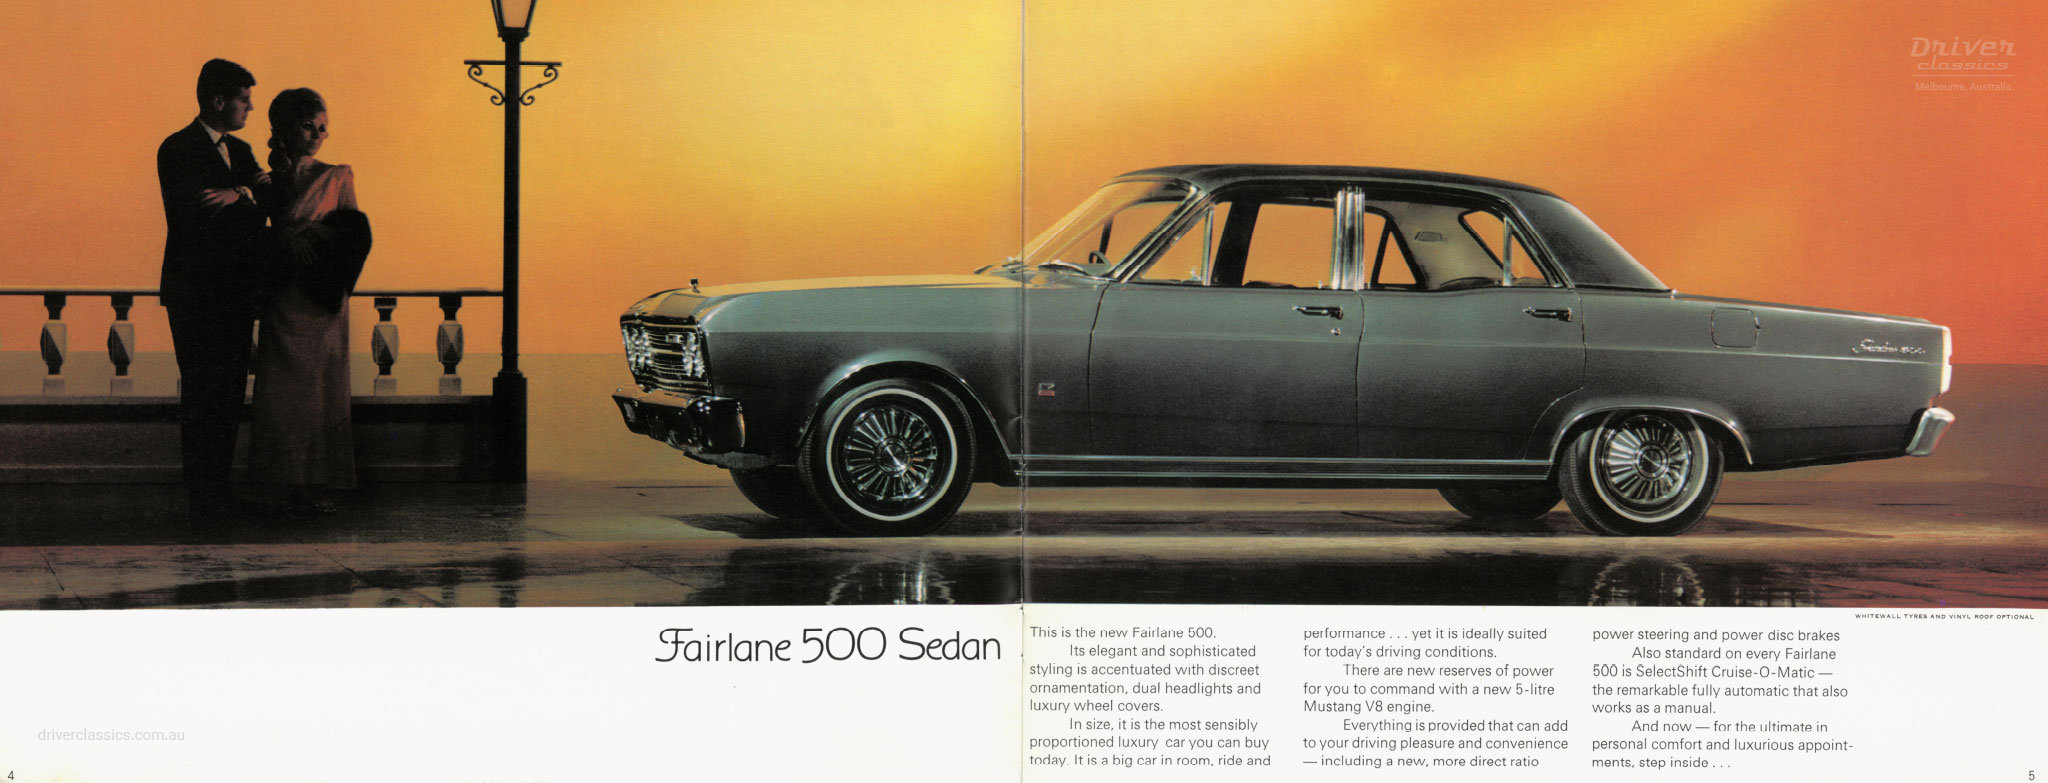 Page from 1968 Ford Fairlane 500 brochure, showing side profile